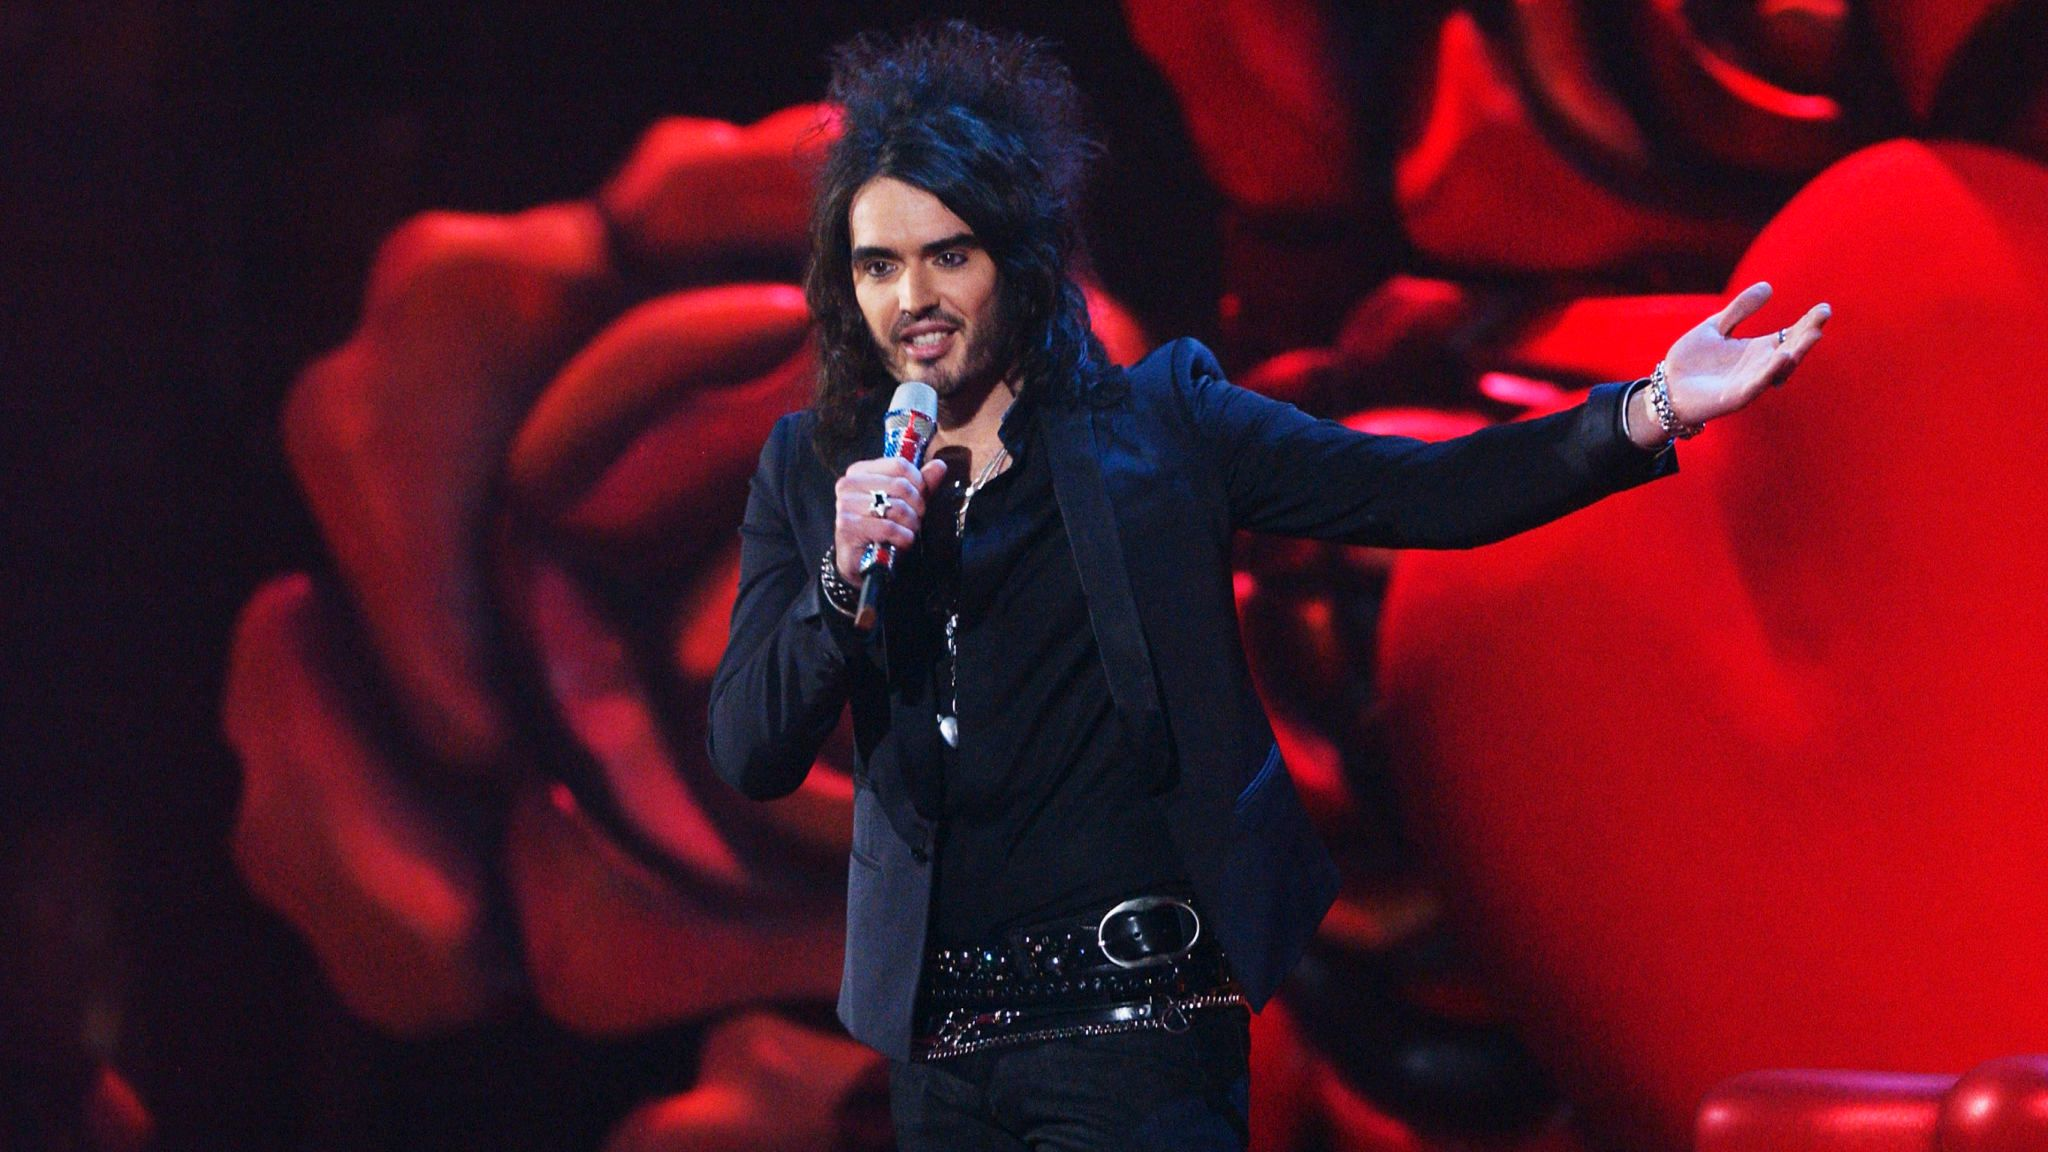 Russell Brand in 2007